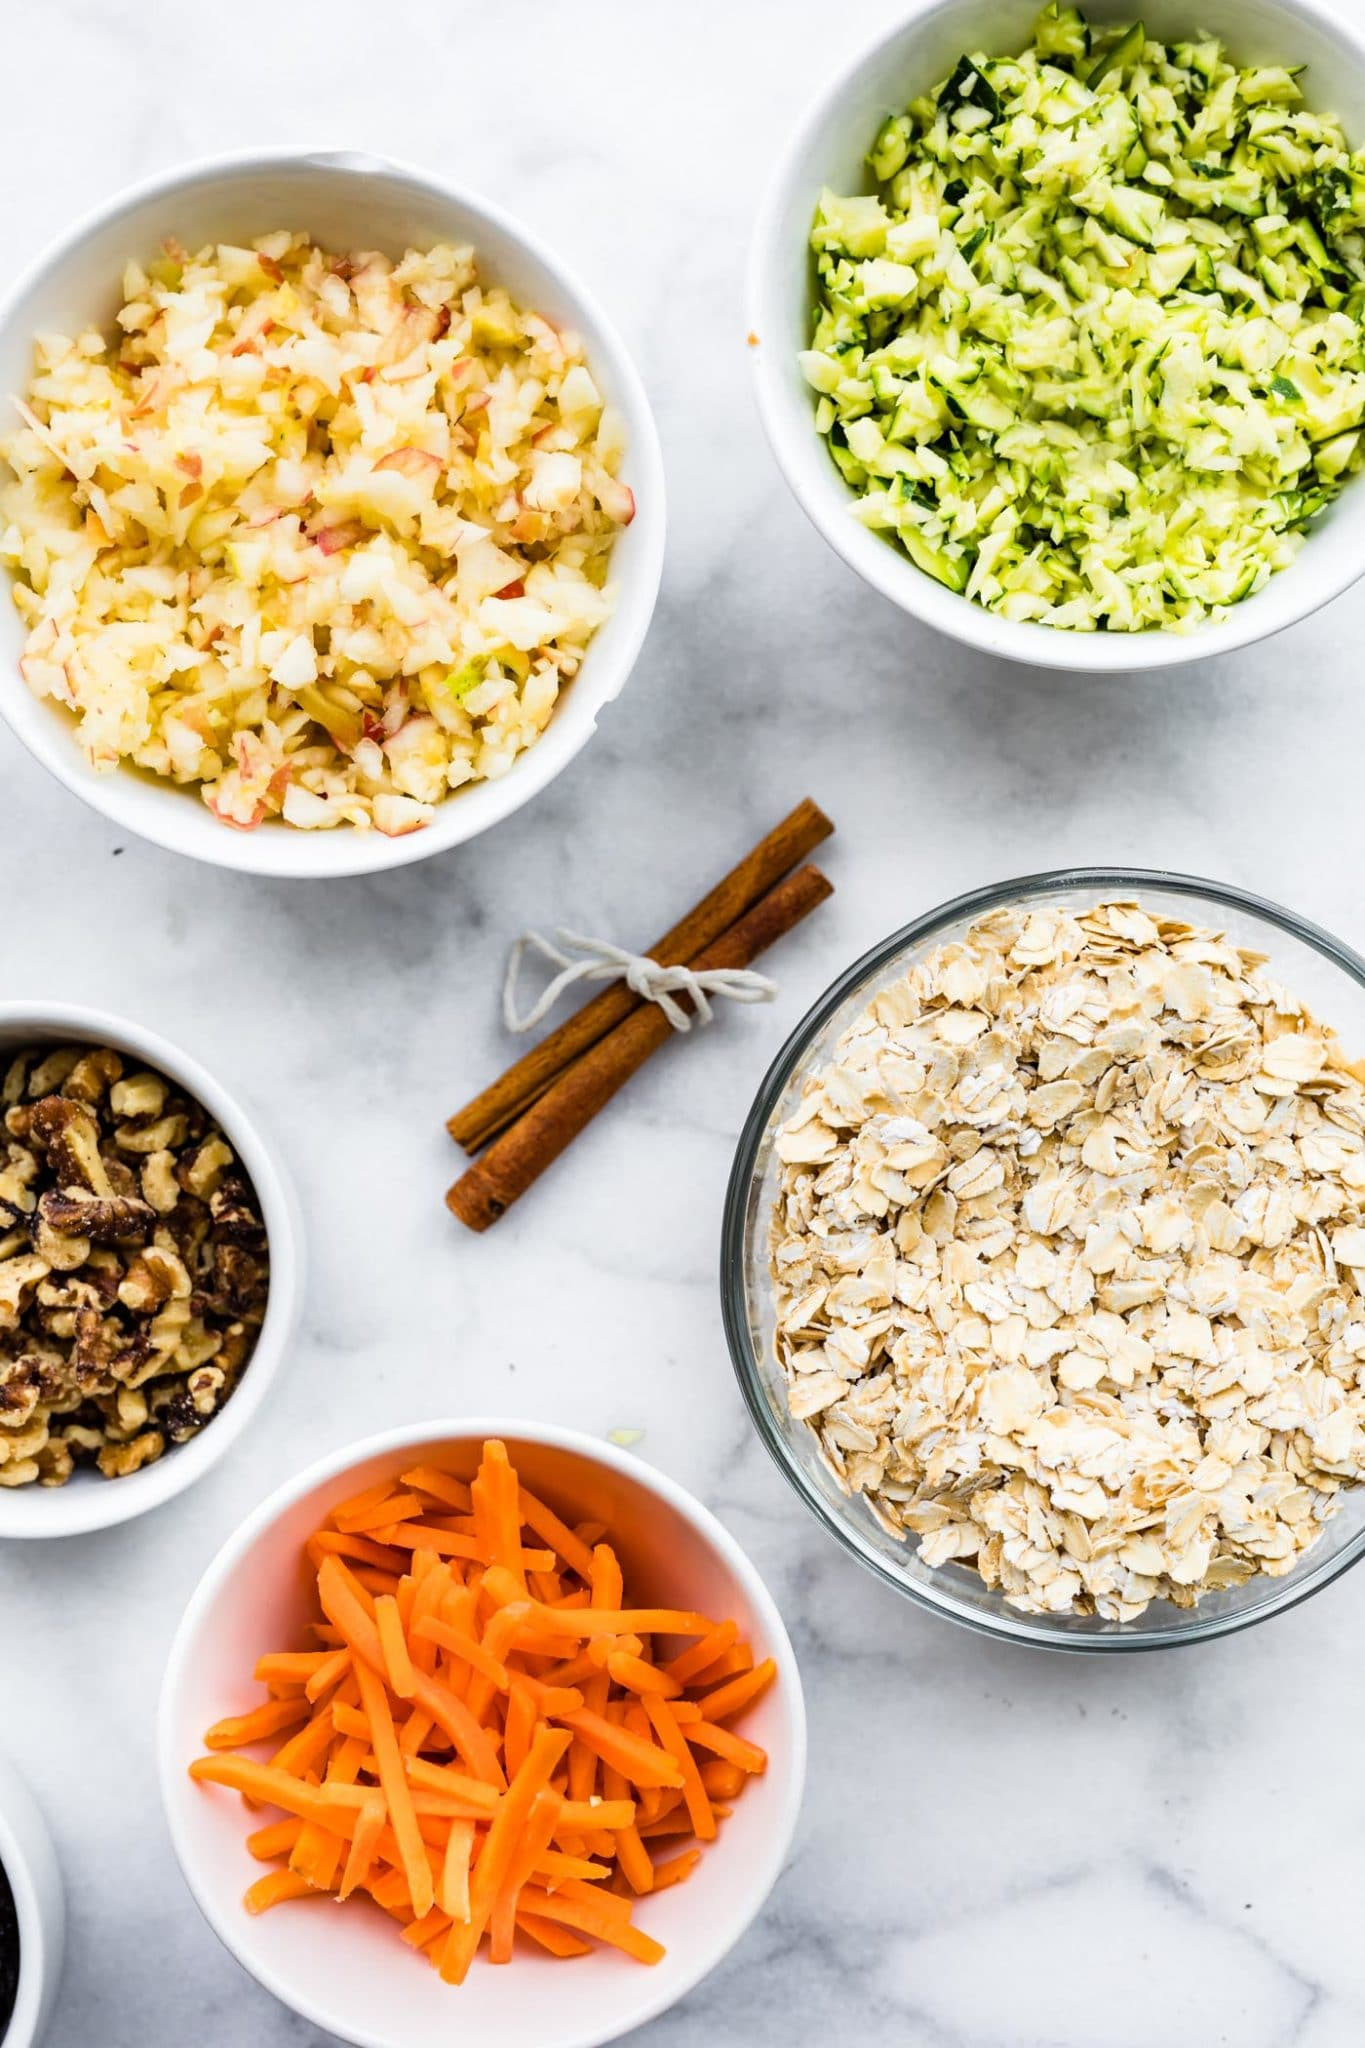 shredded zucchini, chopped apples, walnuts, shredded carrots, and cinnamon sticks on a white marble counter